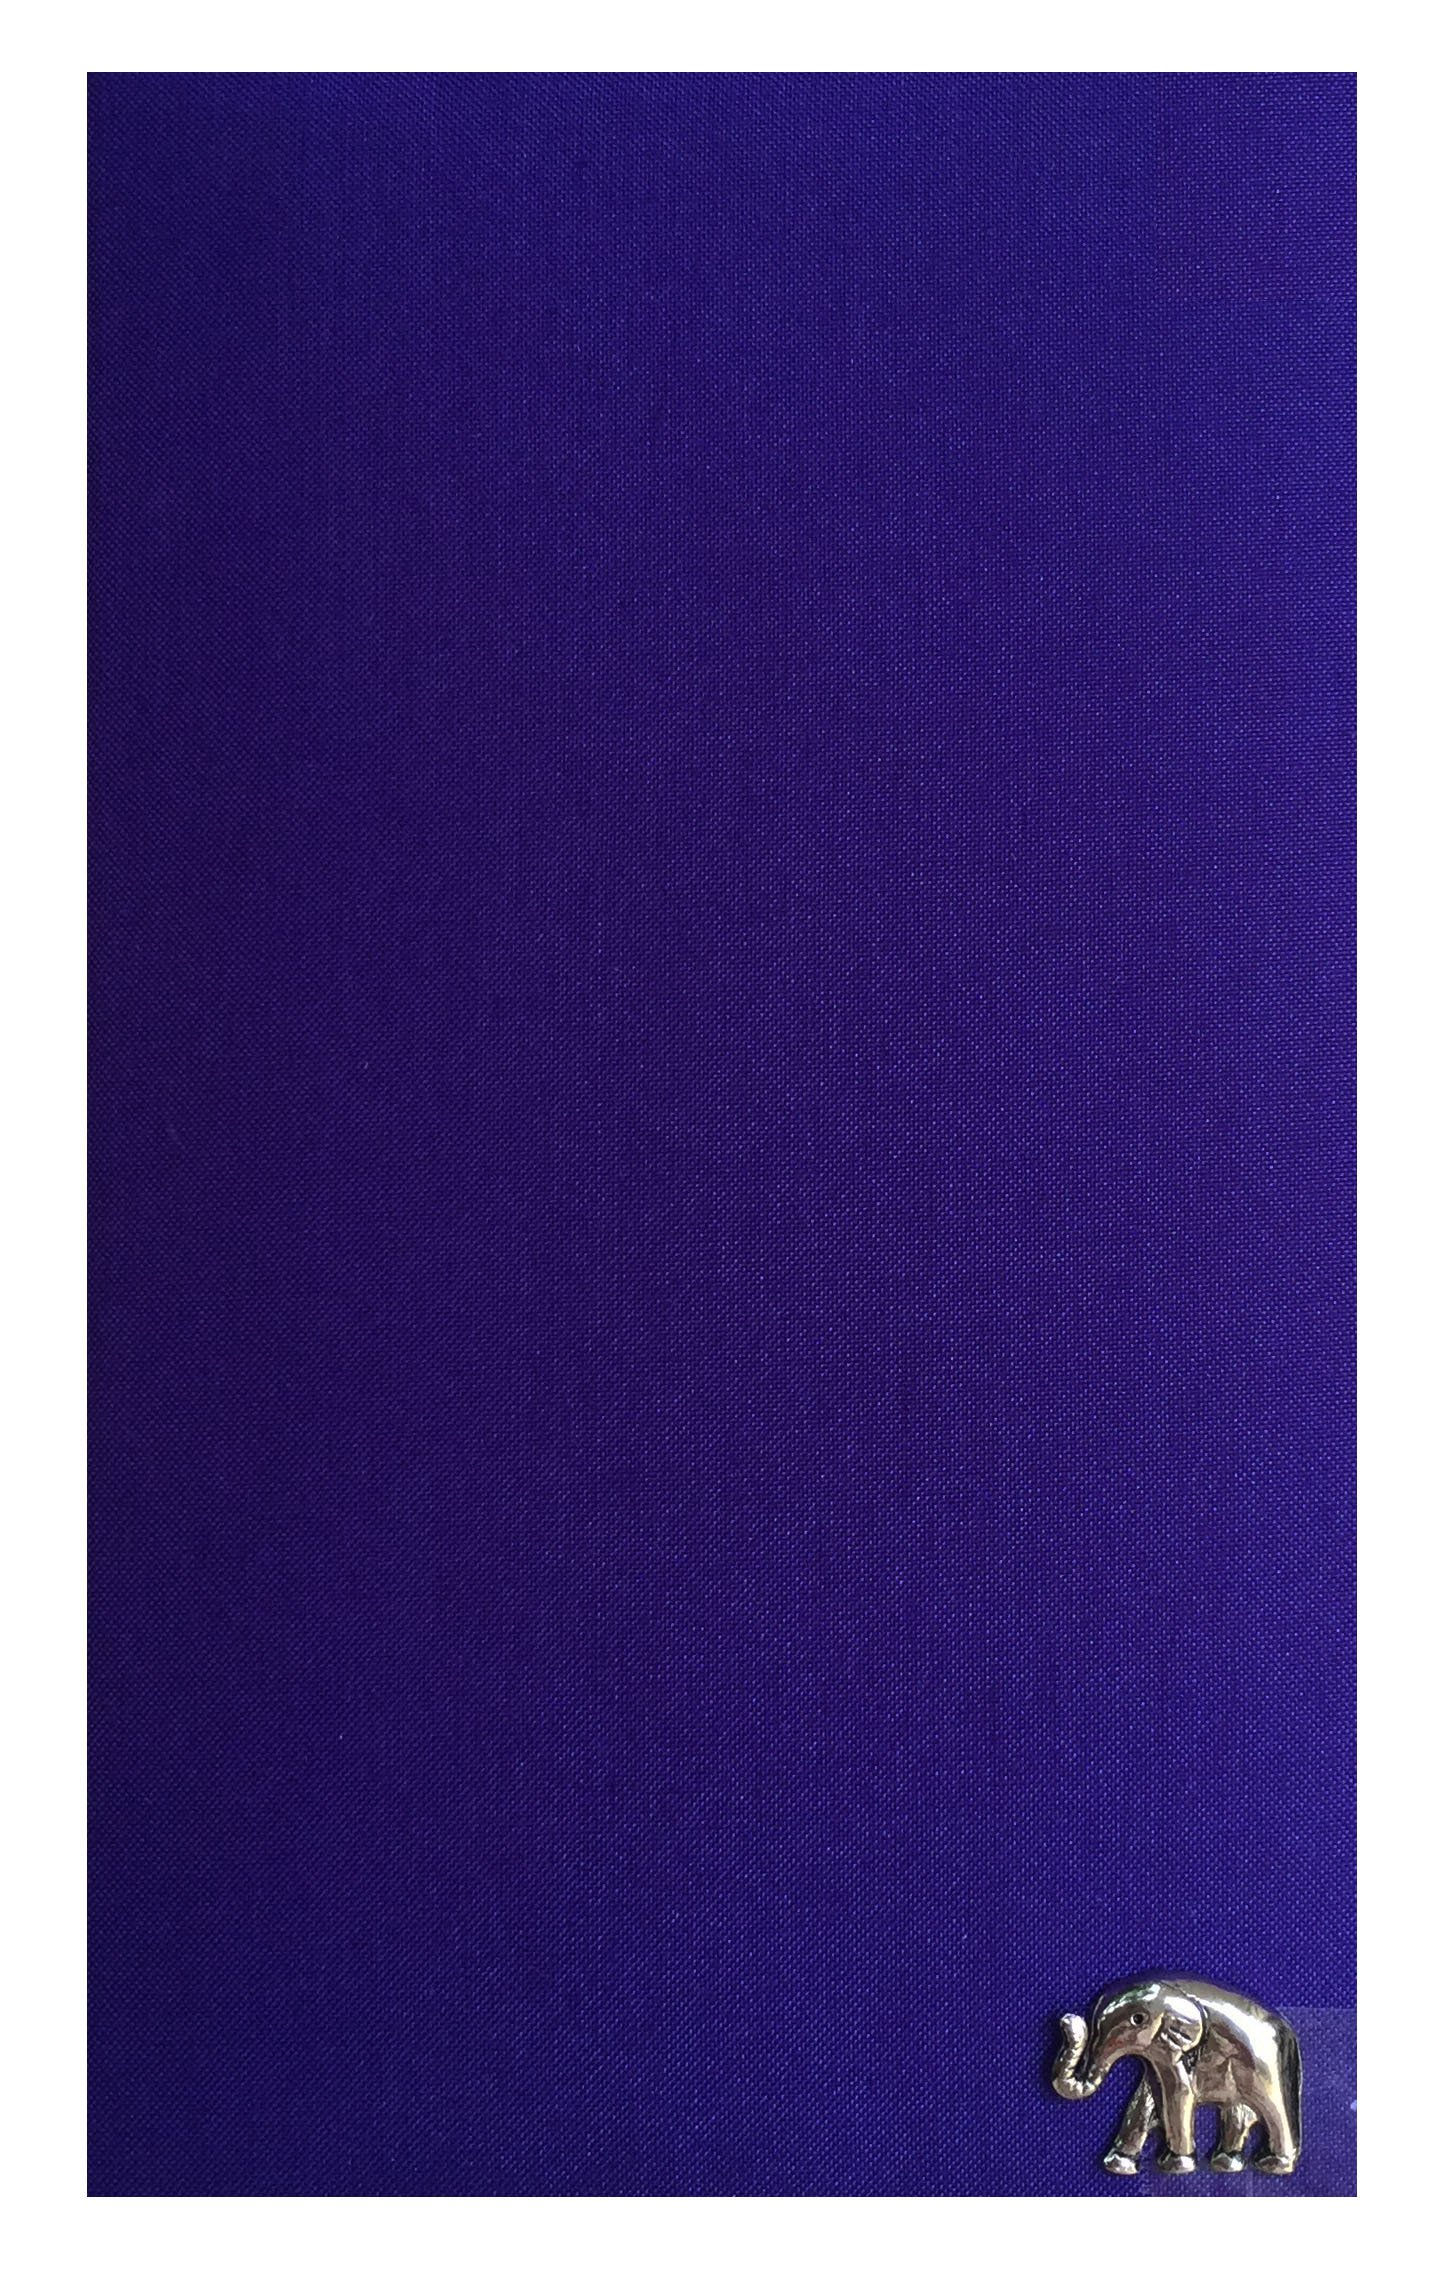 Indigo Thai Silk Blend Waitstaff Organizer, Guest Check Presenter for Server, Check Holder for Restaurant, Guest Check Book Pocket, Restaurant Server Book (With Plastic Covers)